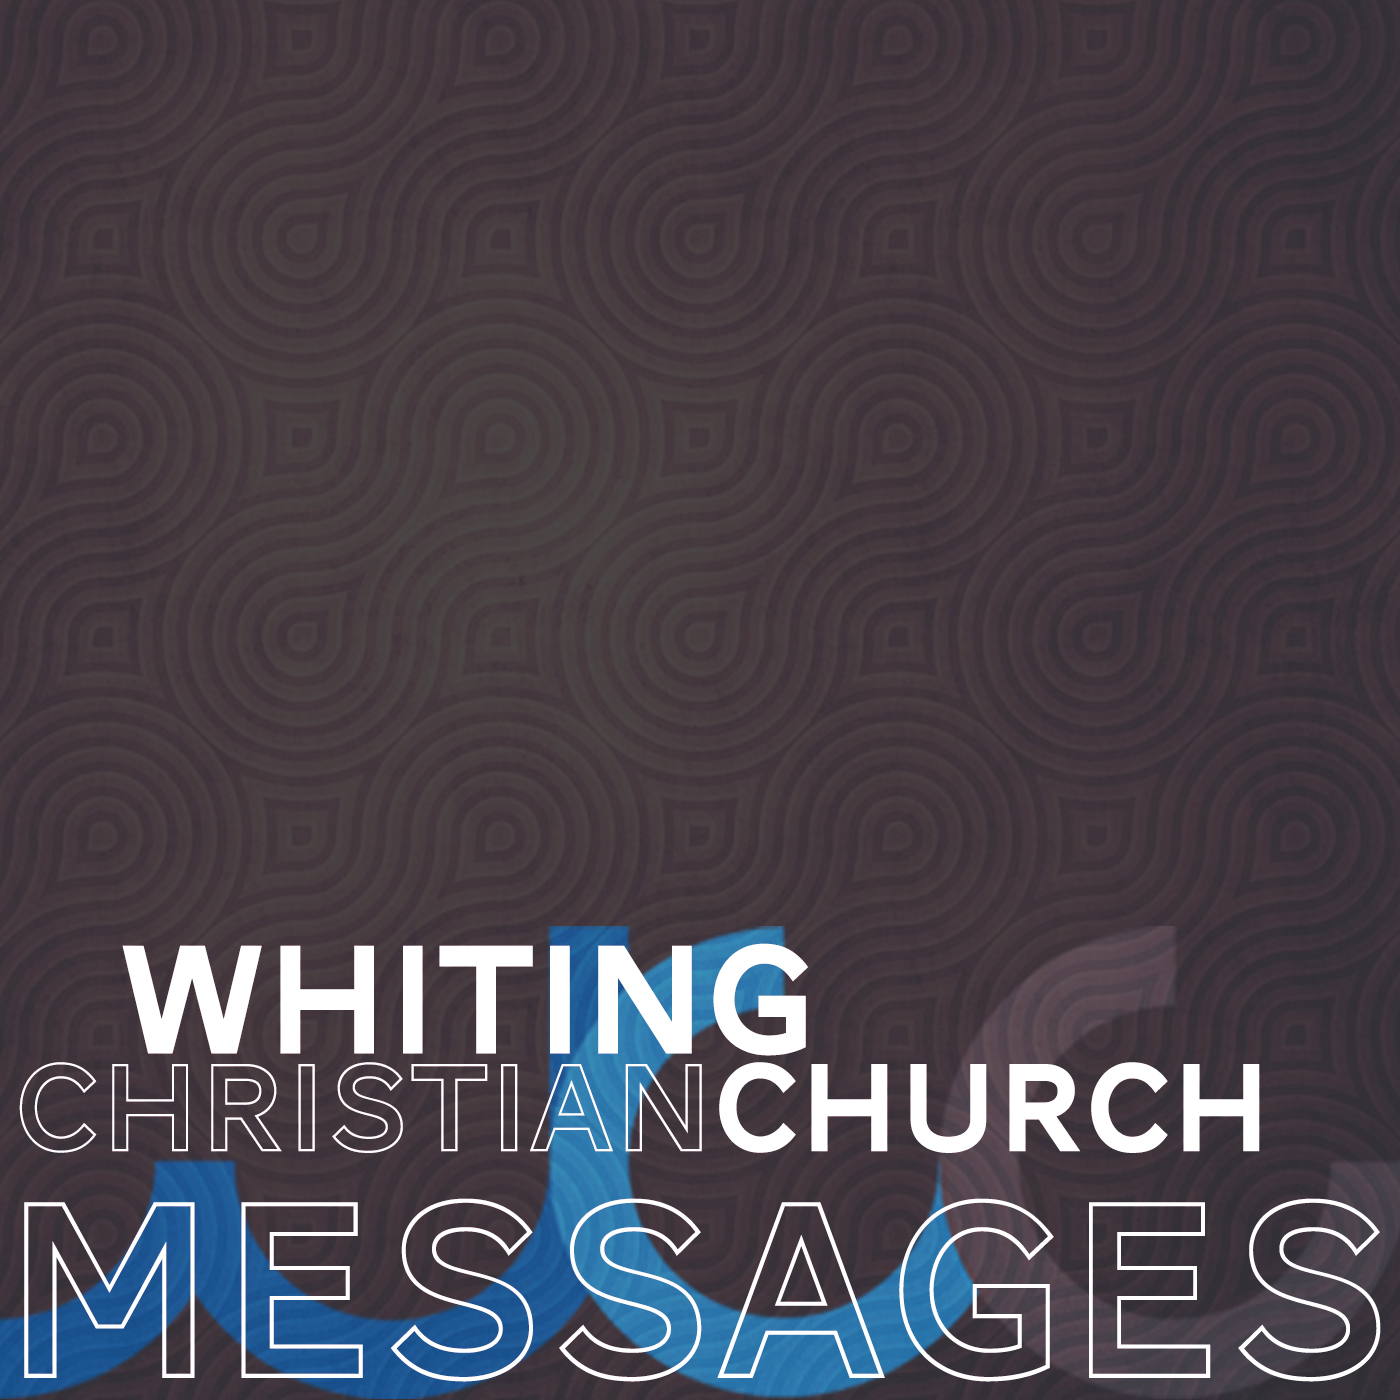 Messages - Whiting Christian Church